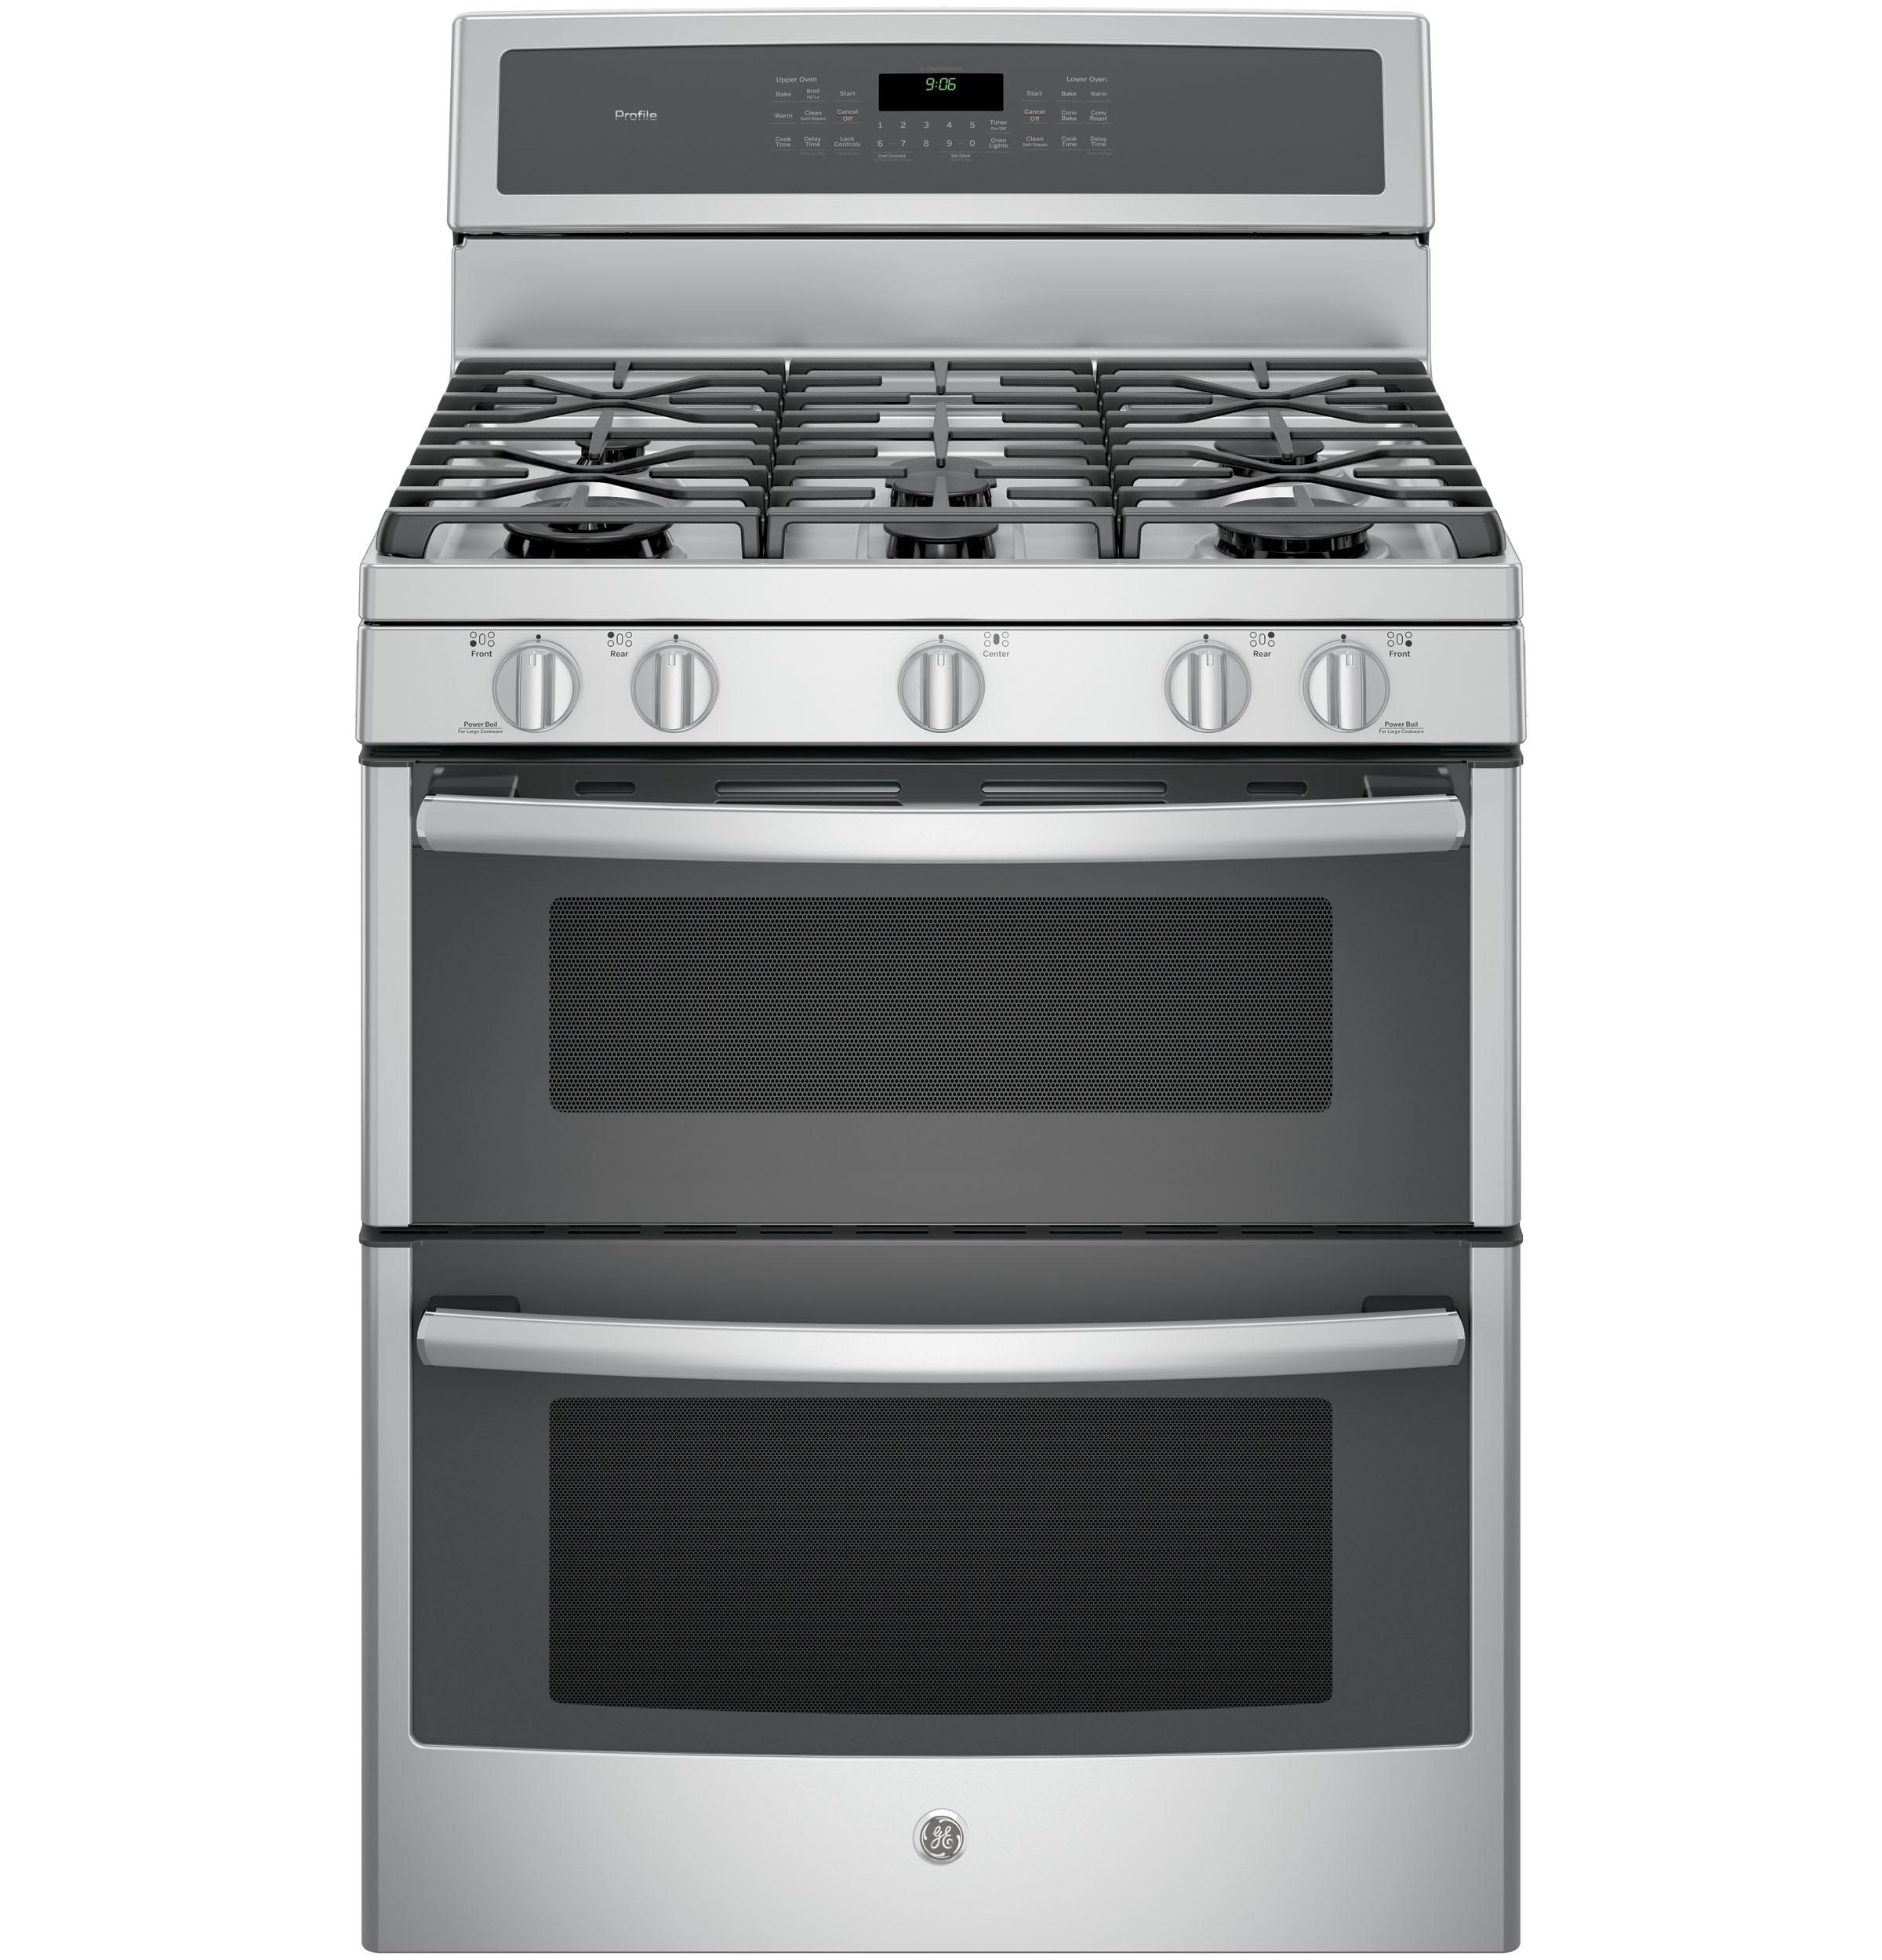 "GE Profile(TM) Series 30"" Free-Standing Gas Double Oven Convection Range